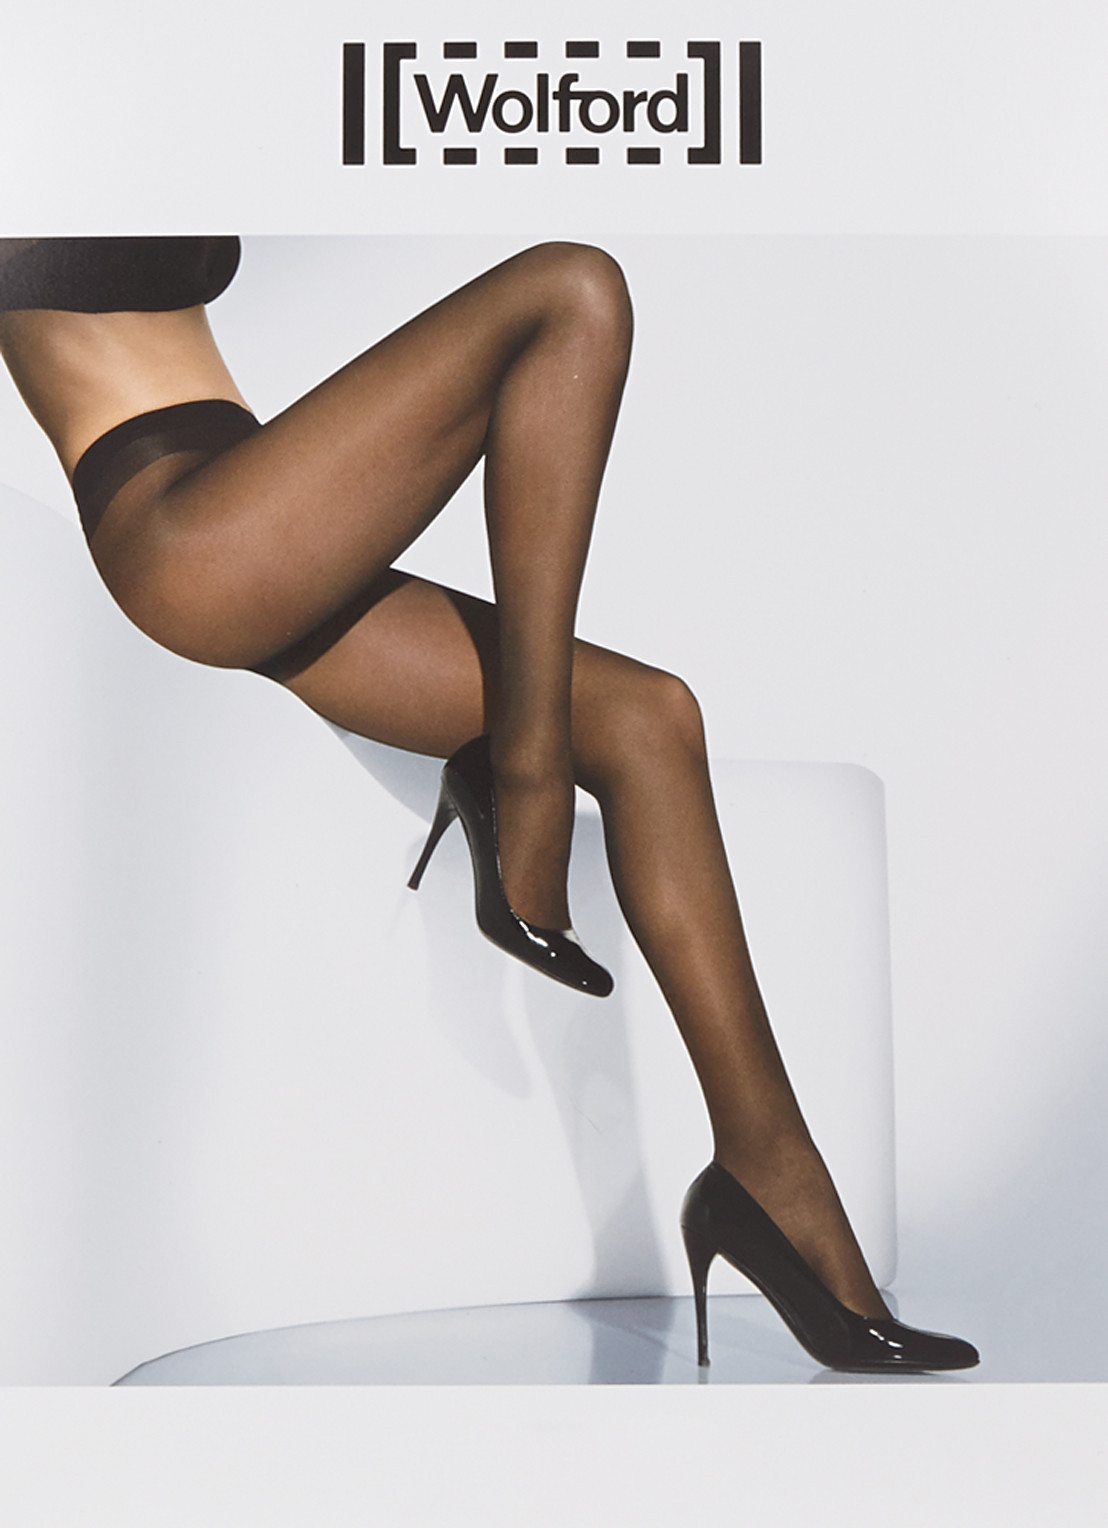 Wolford Perfectly panty in 30 denier